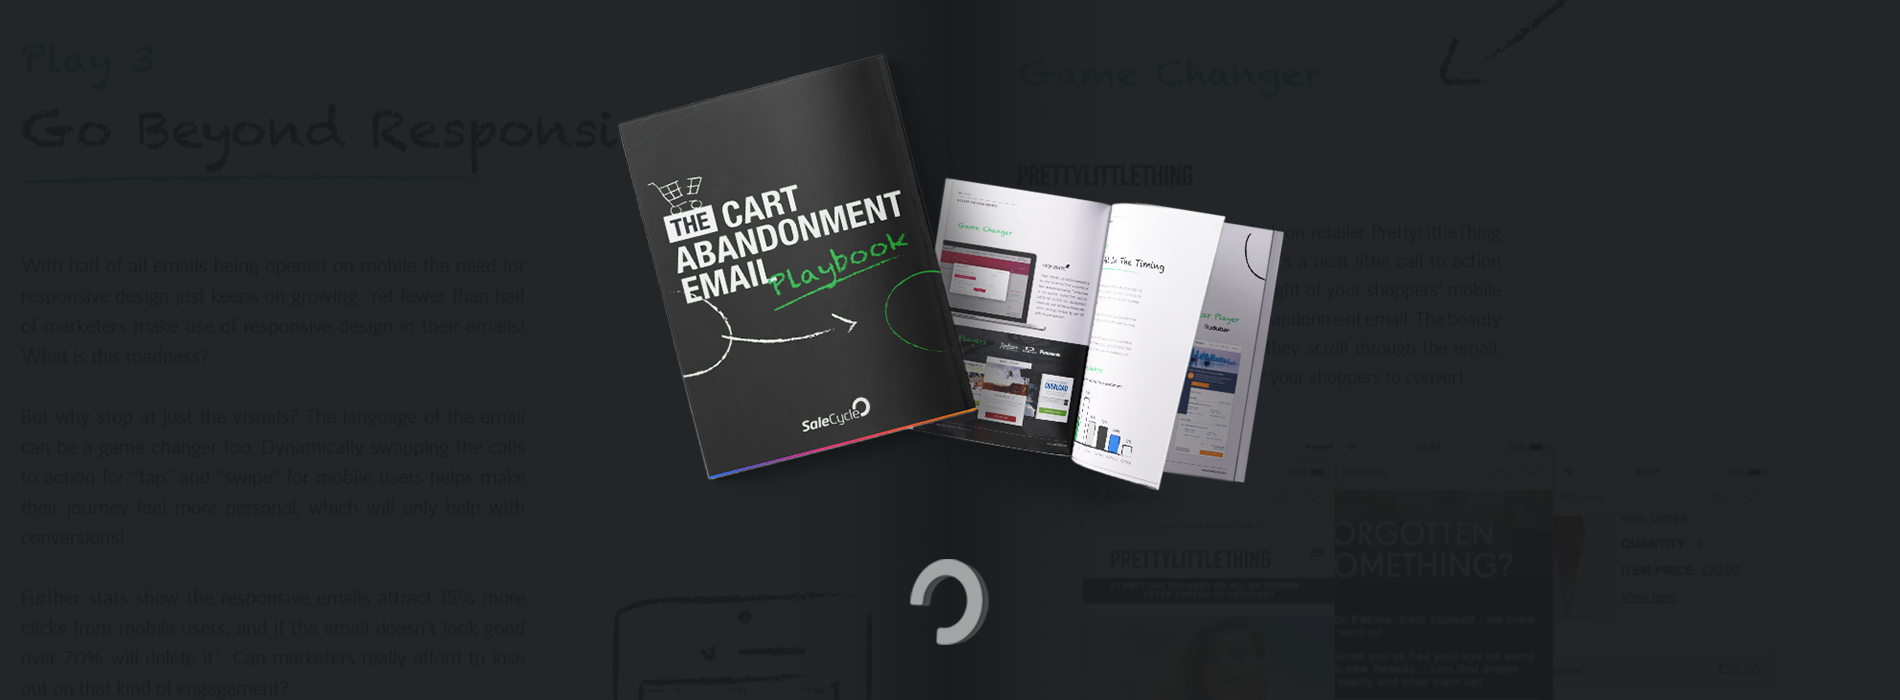 [eBook]: The Cart Abandonment Email Playbook